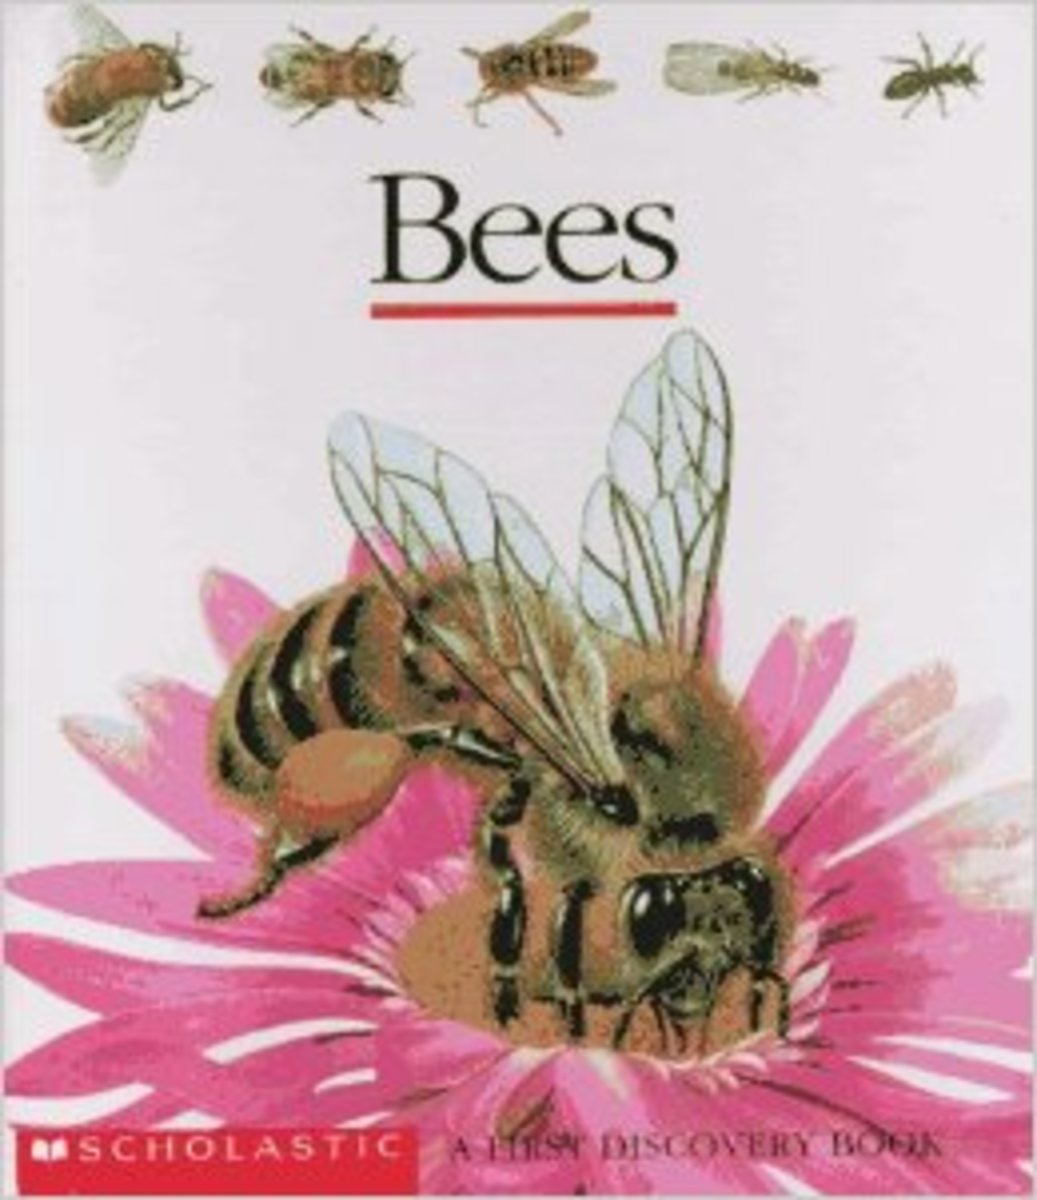 Bees (First Discovery) by Gallimard Jeunesse